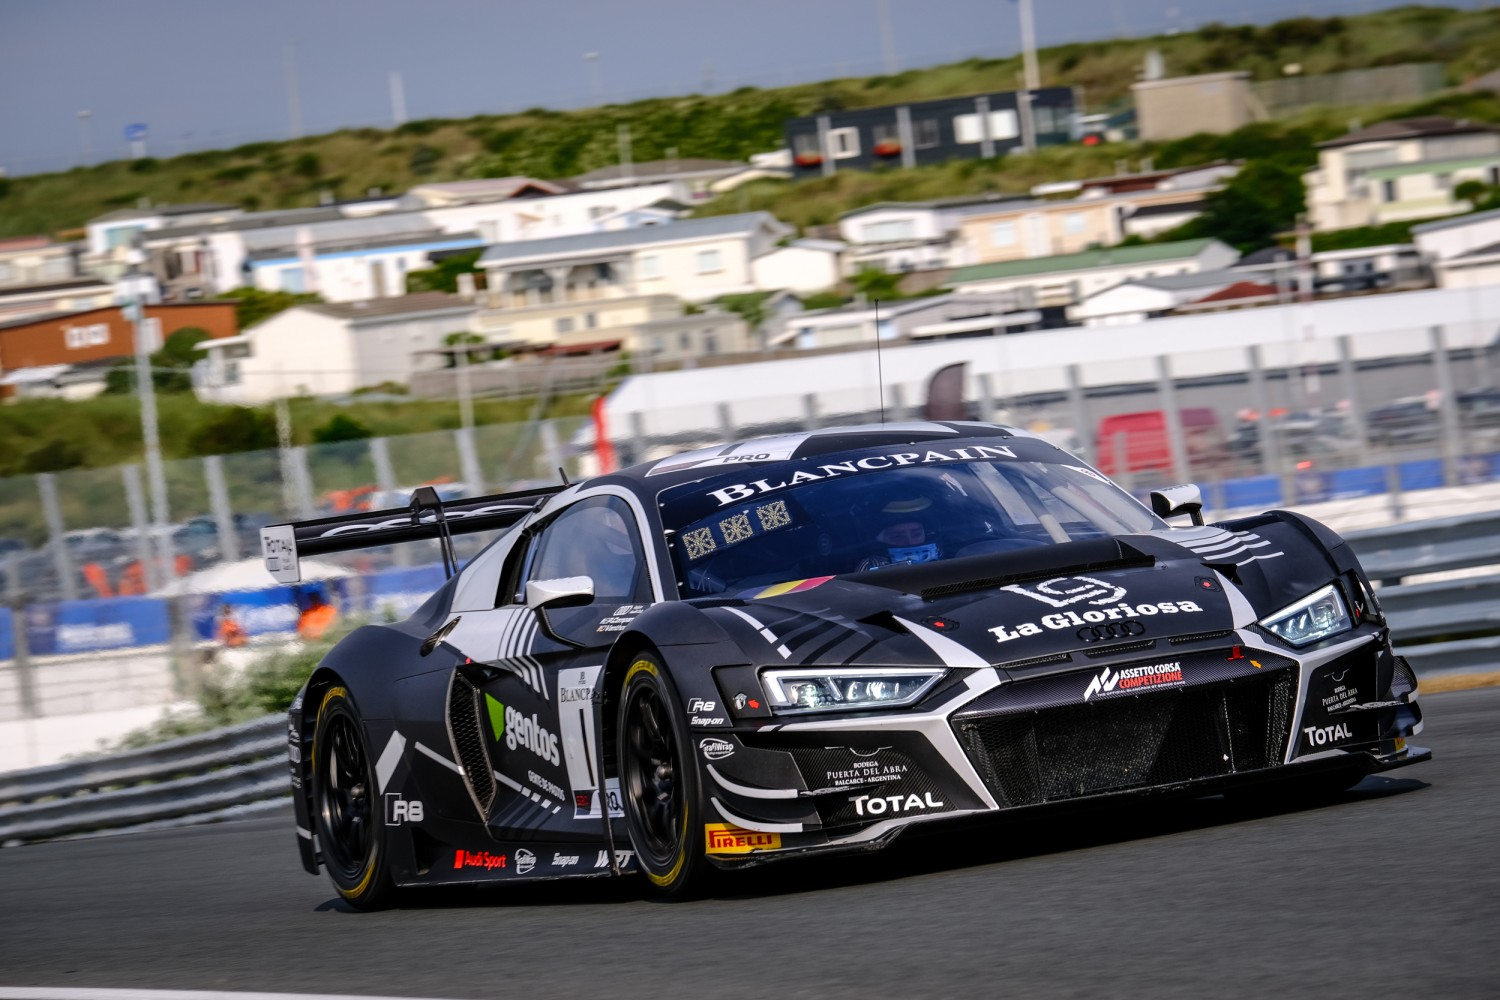 Perez Companc makes perfect return by topping opening Zandvoort practice